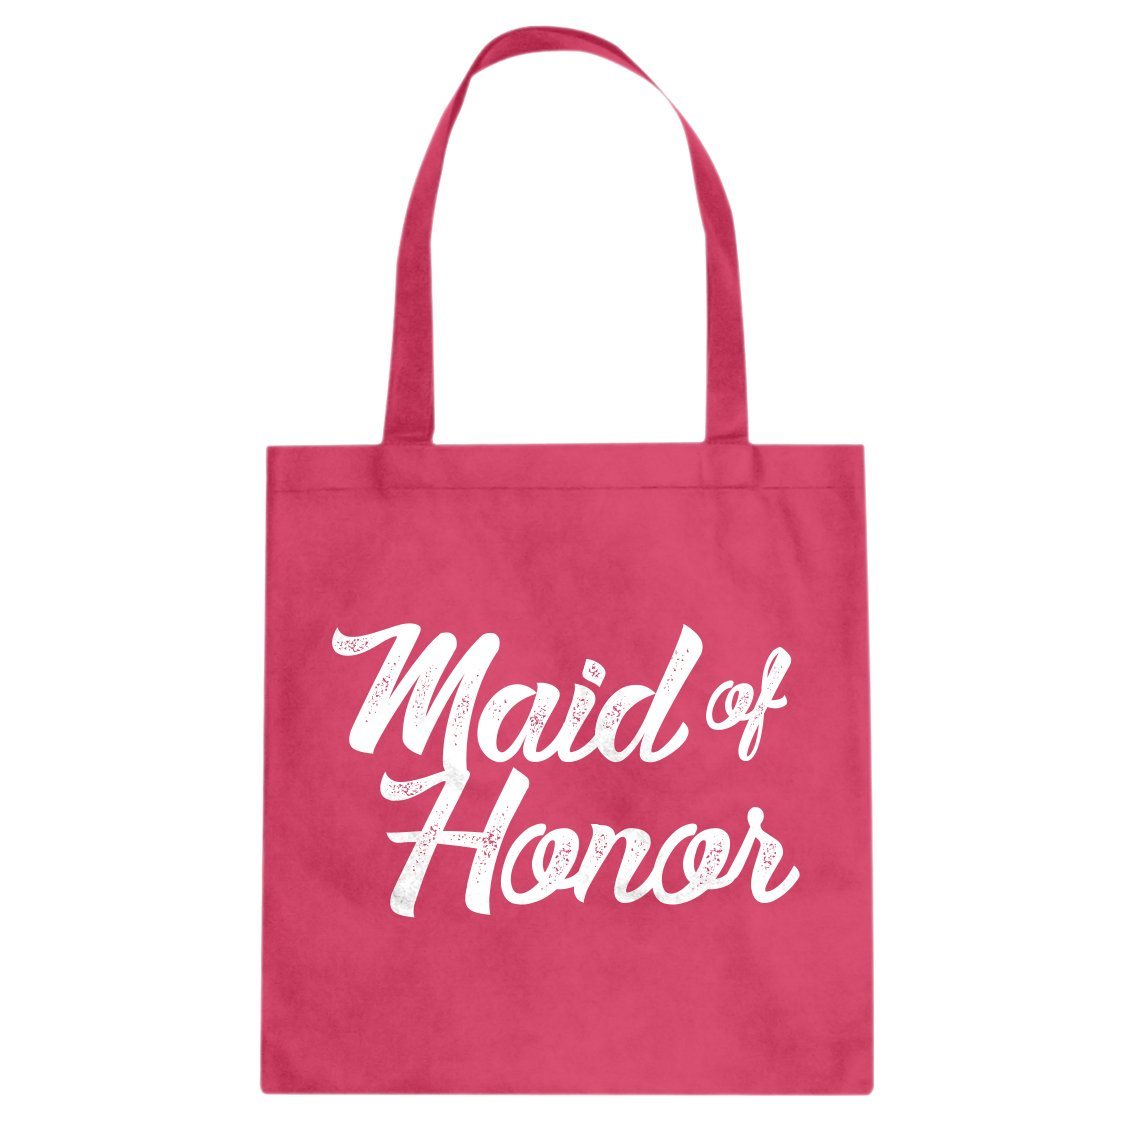 Indica Plateau Maid of Honor Cotton Canvas Tote Bag